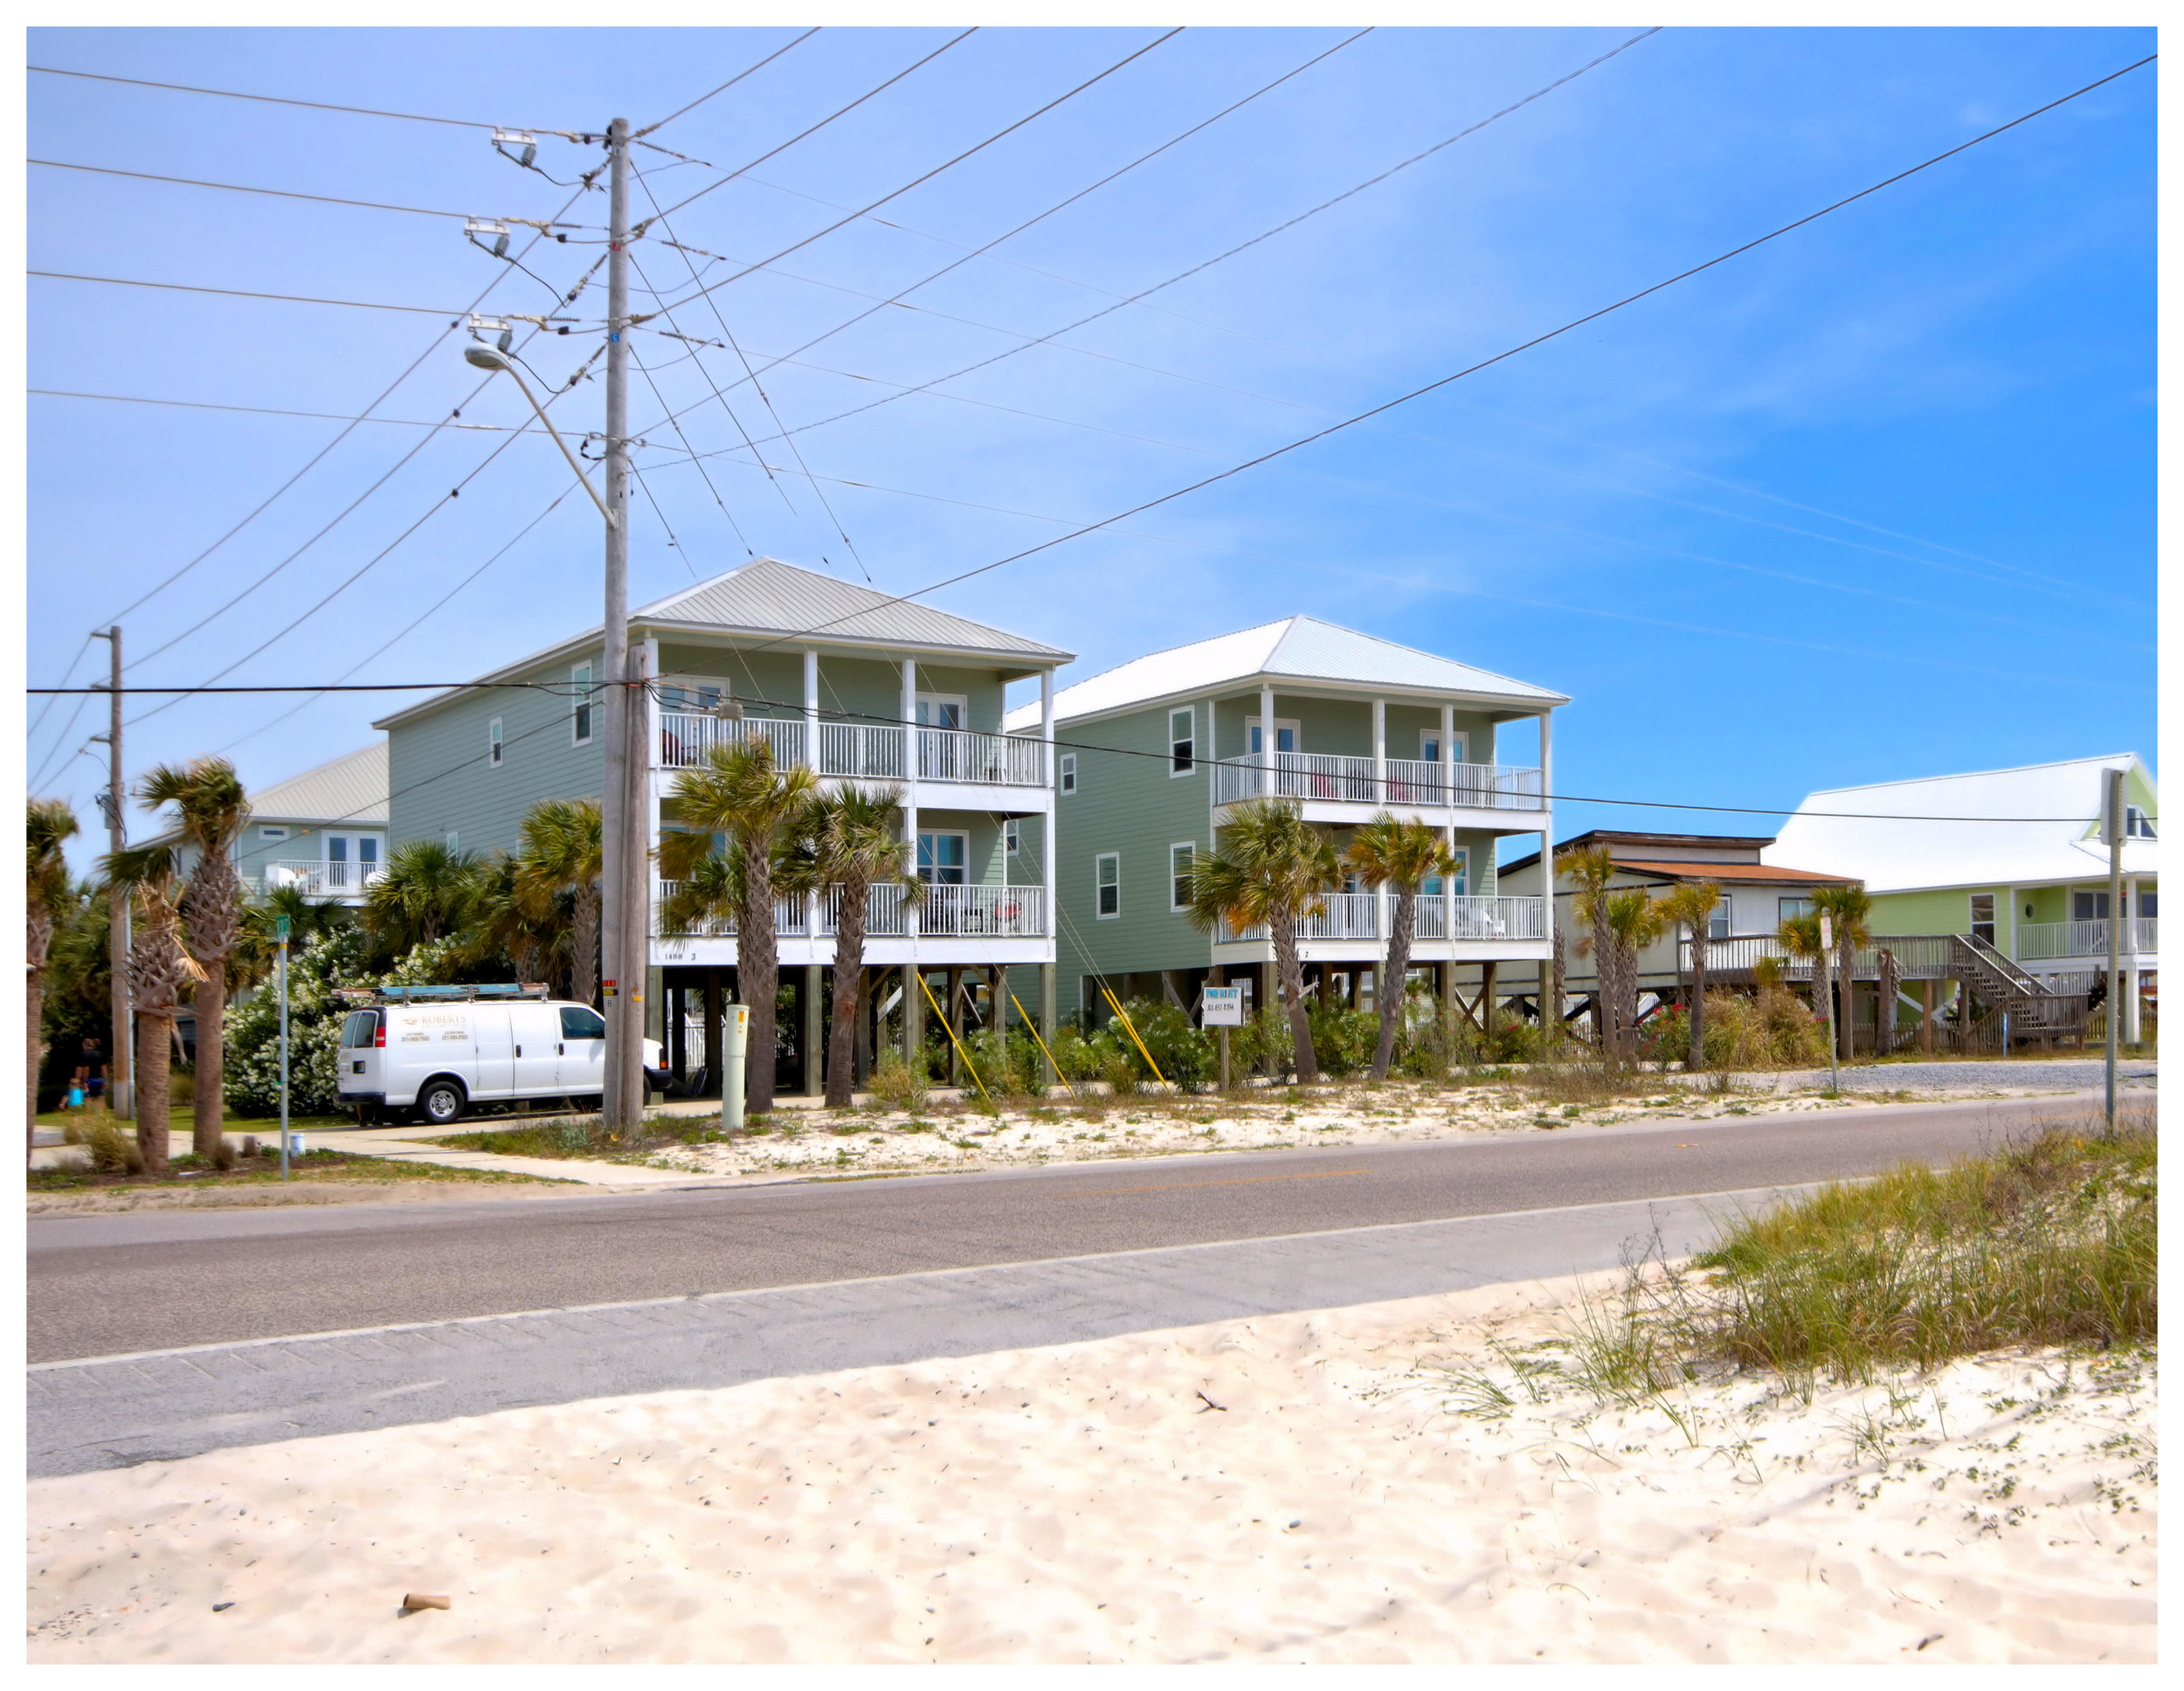 View of the houses from the beach